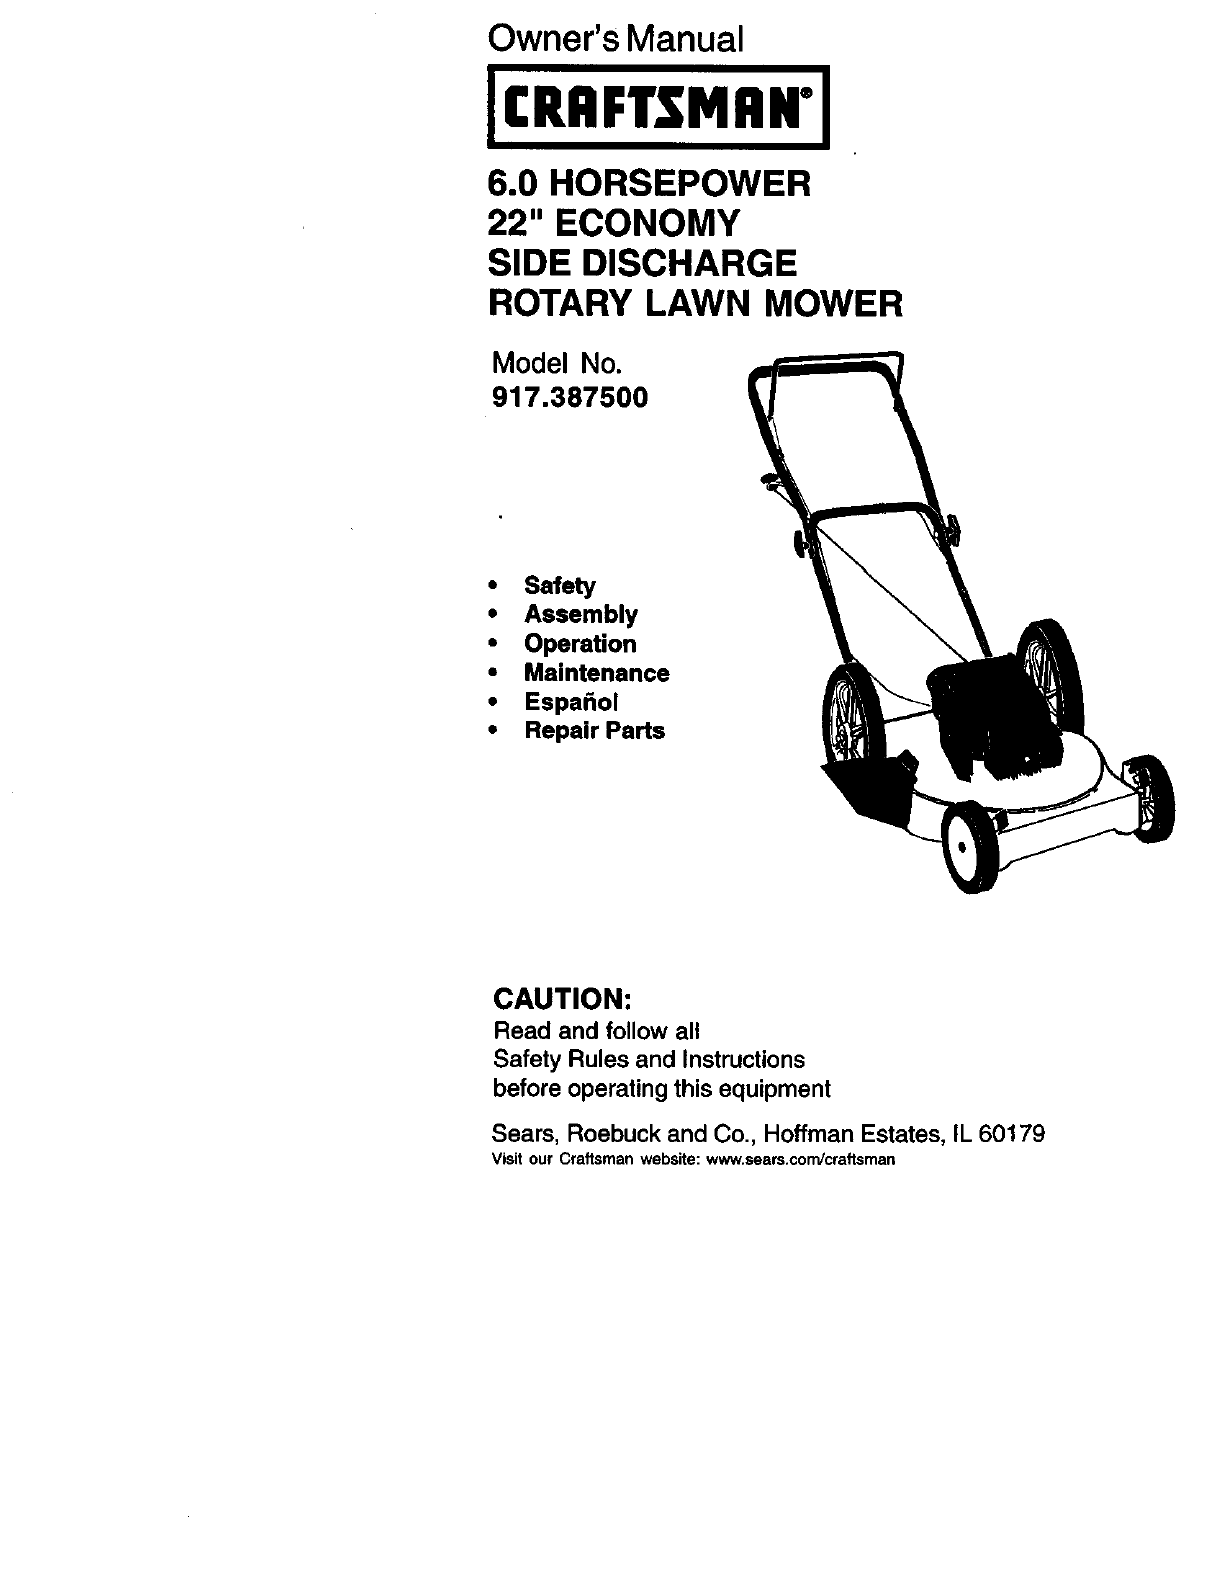 rover craftsman lawn mower manual iso 1048721995 passenger cars